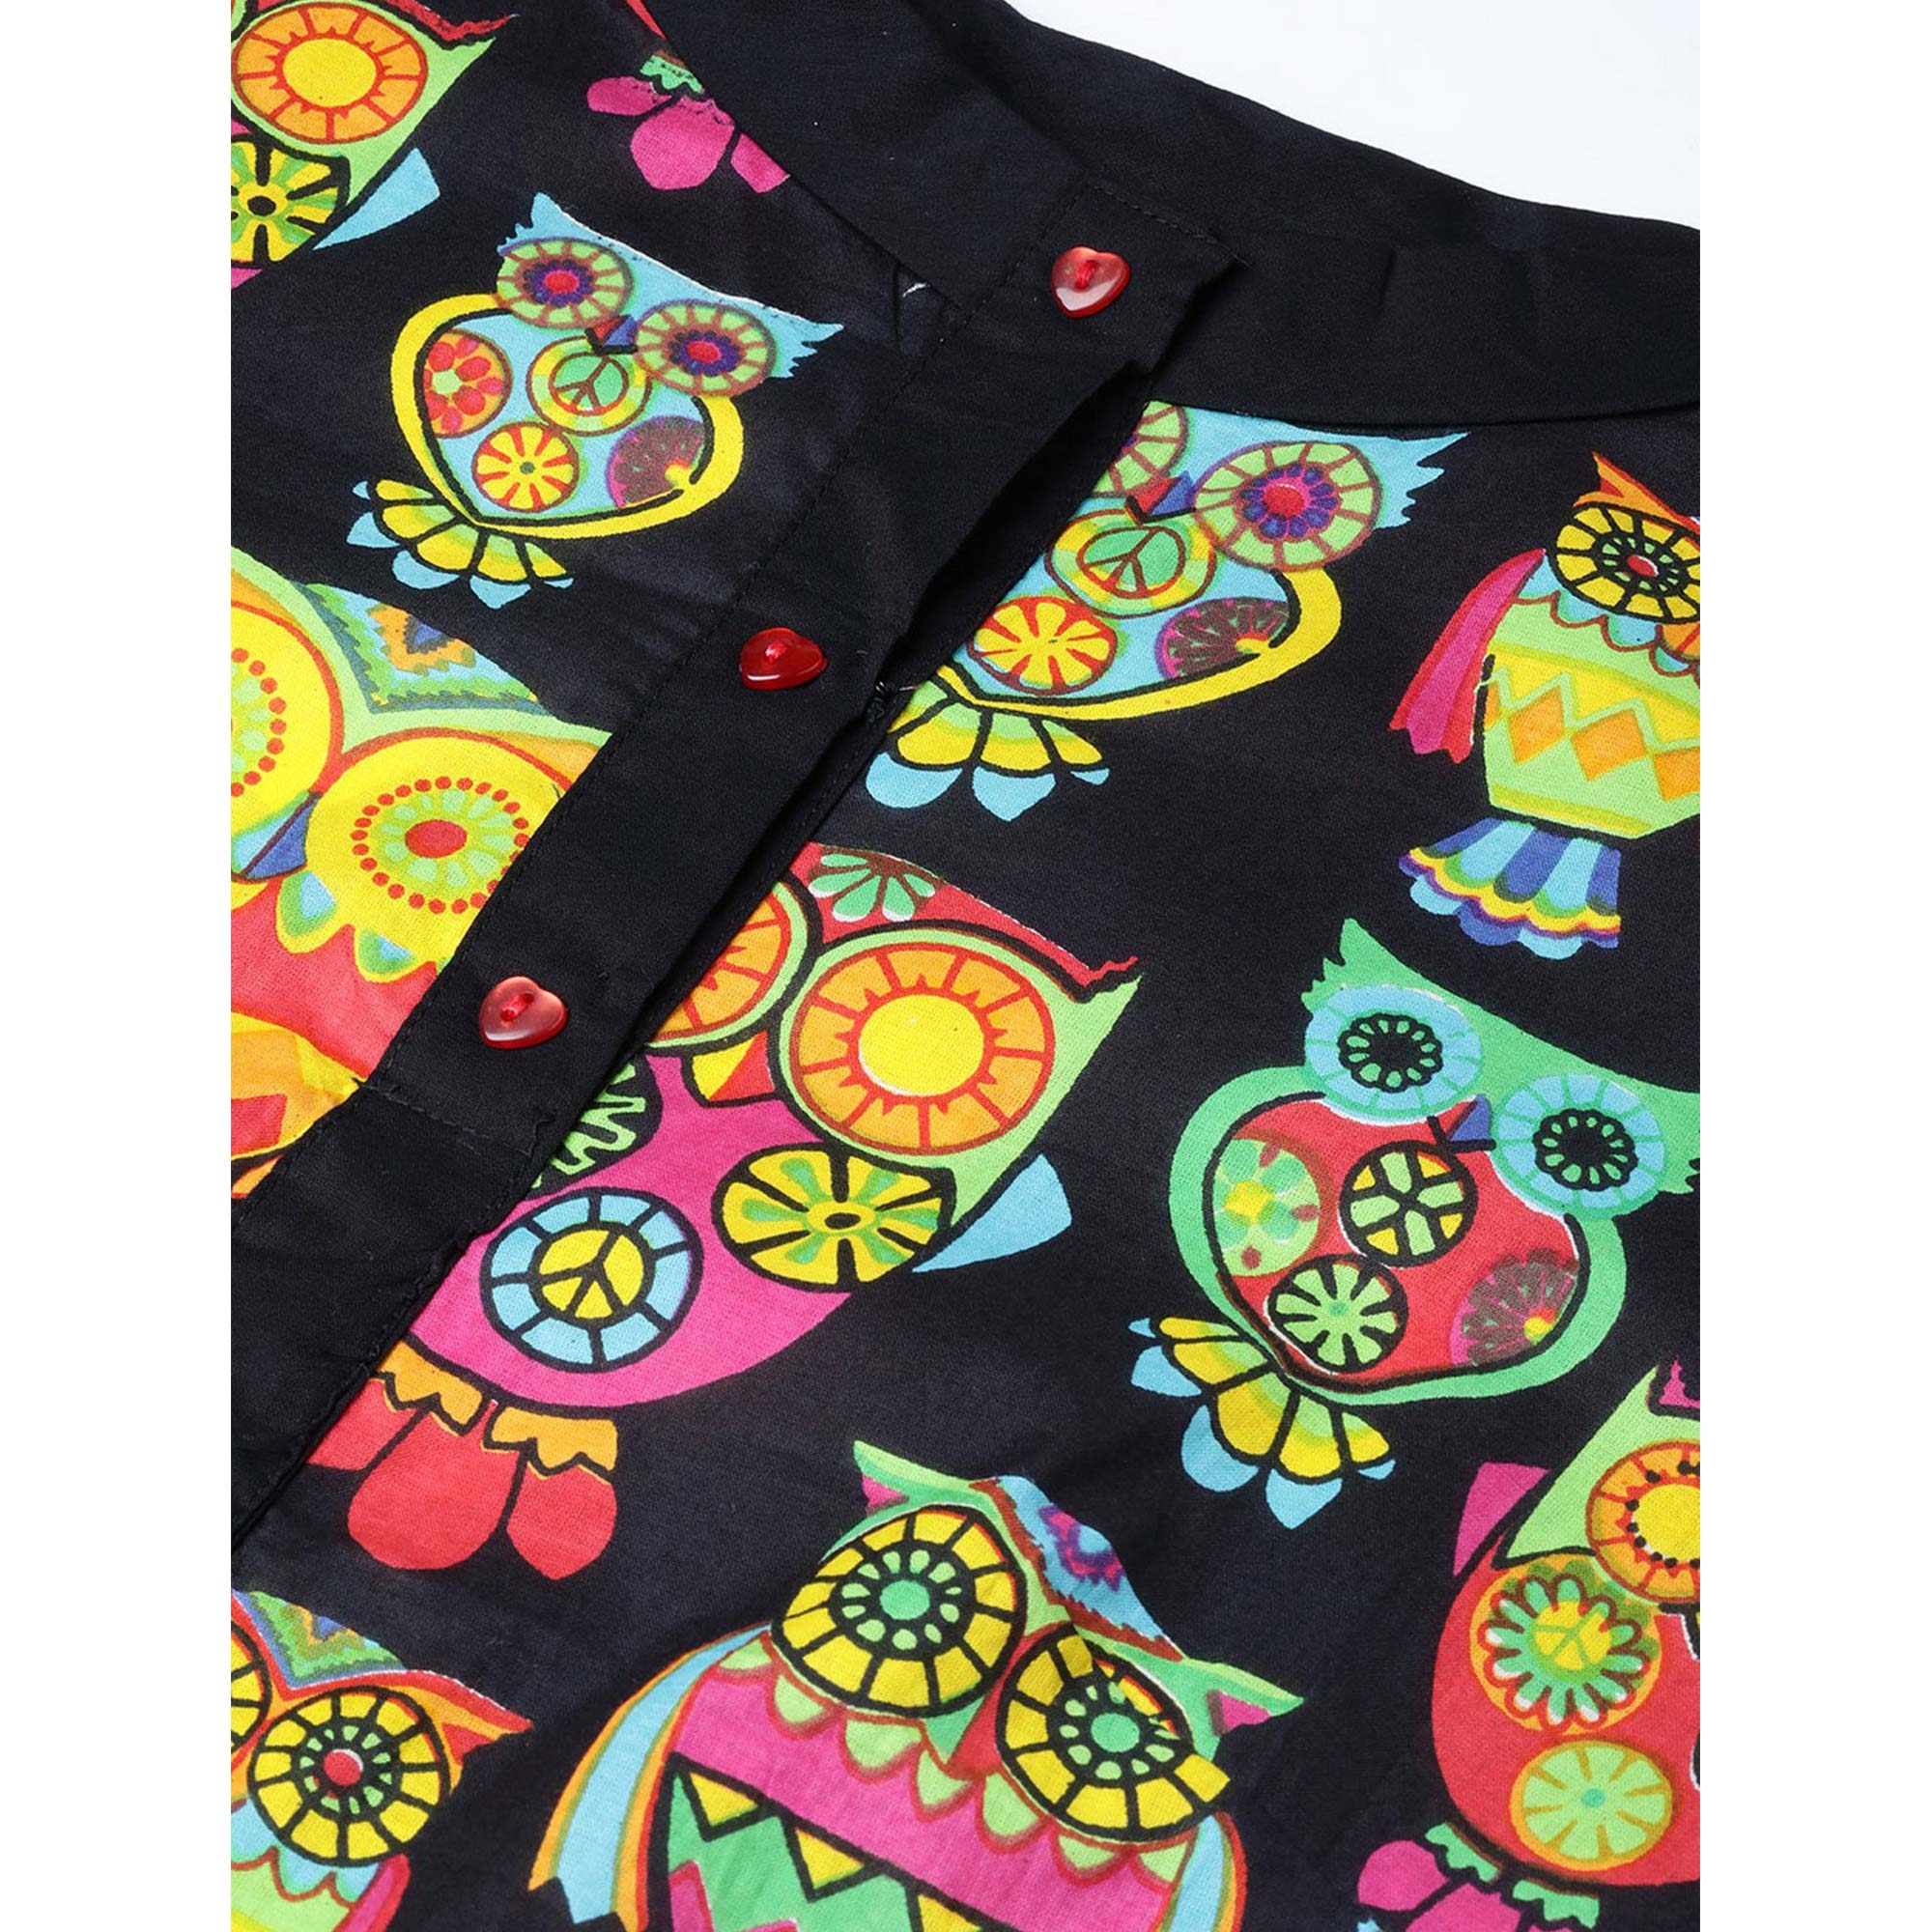 Capricious Black Colored Casual Wear Printed Cotton Kurti